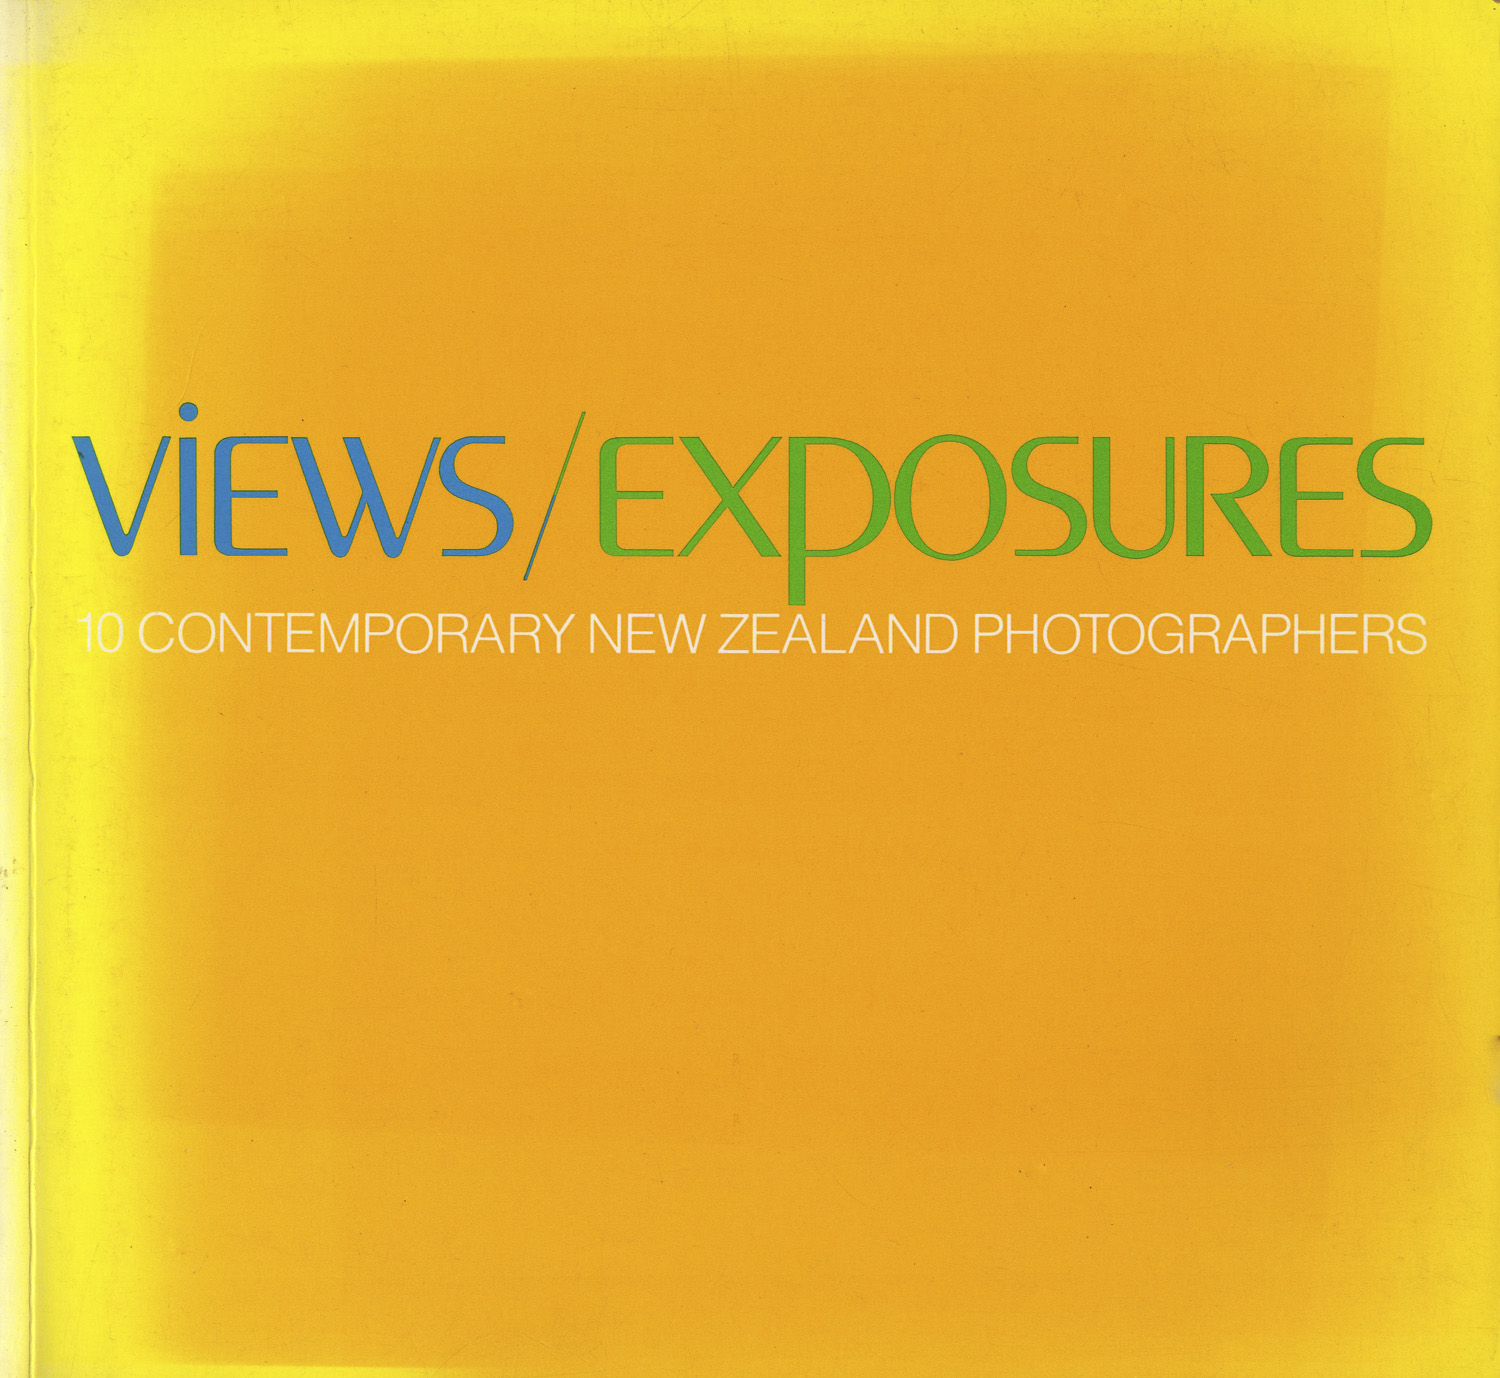 Views/Exposures - 10 Contemporary New Zealand Photographers. National Art Gallery, Wellington,1982. Catalogue for an exhibition of the same name curated by Peter Ireland.